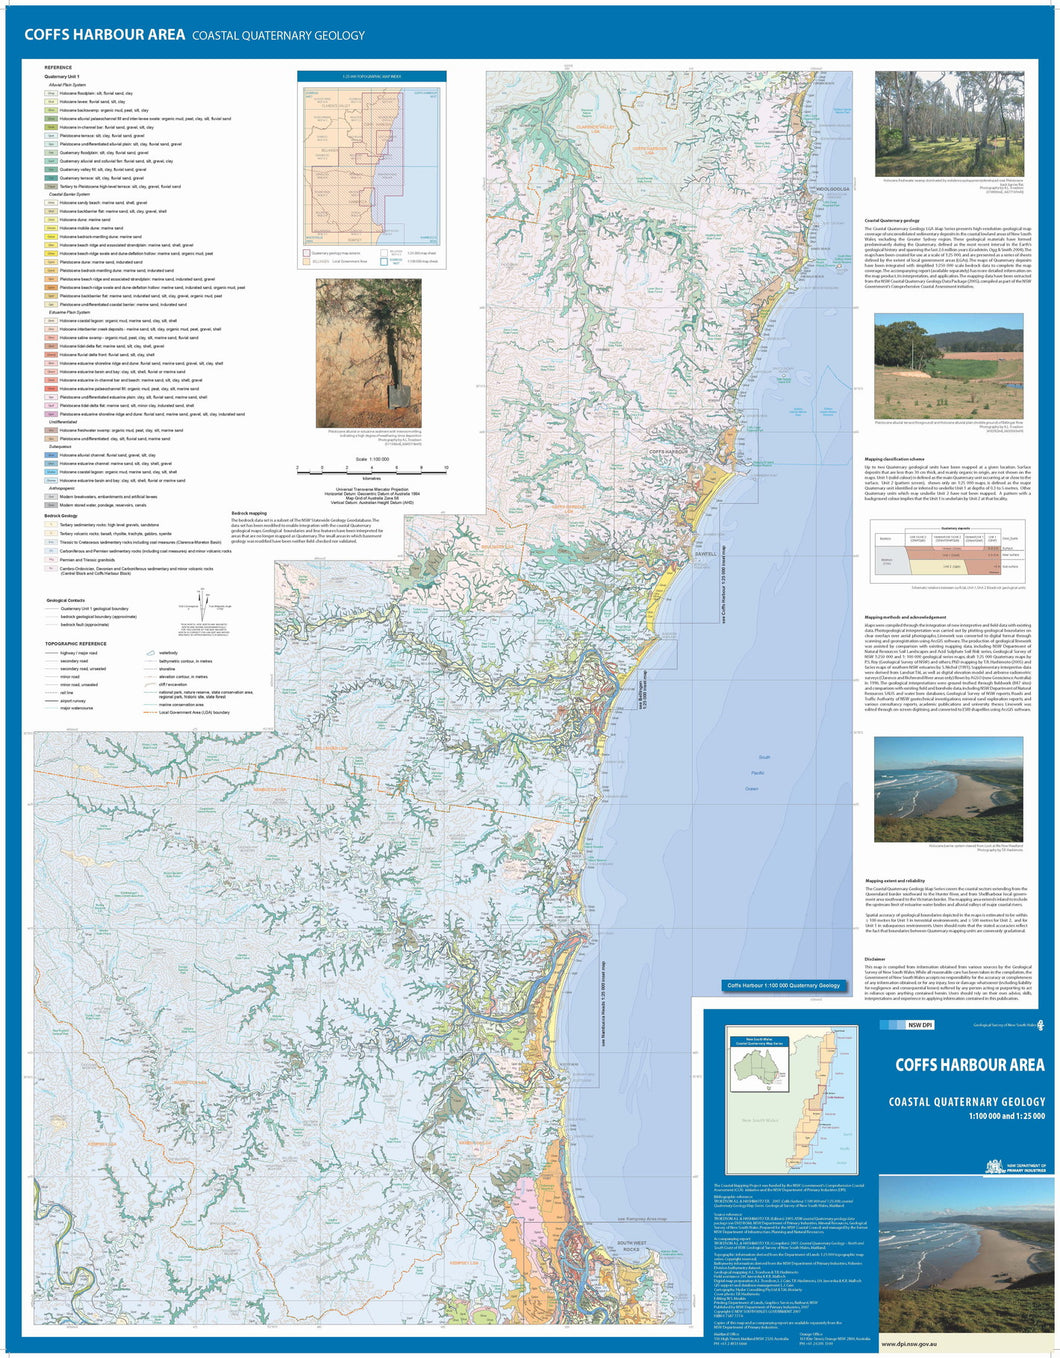 Image of Coffs Harbour Area Coastal Quaternary Geology map